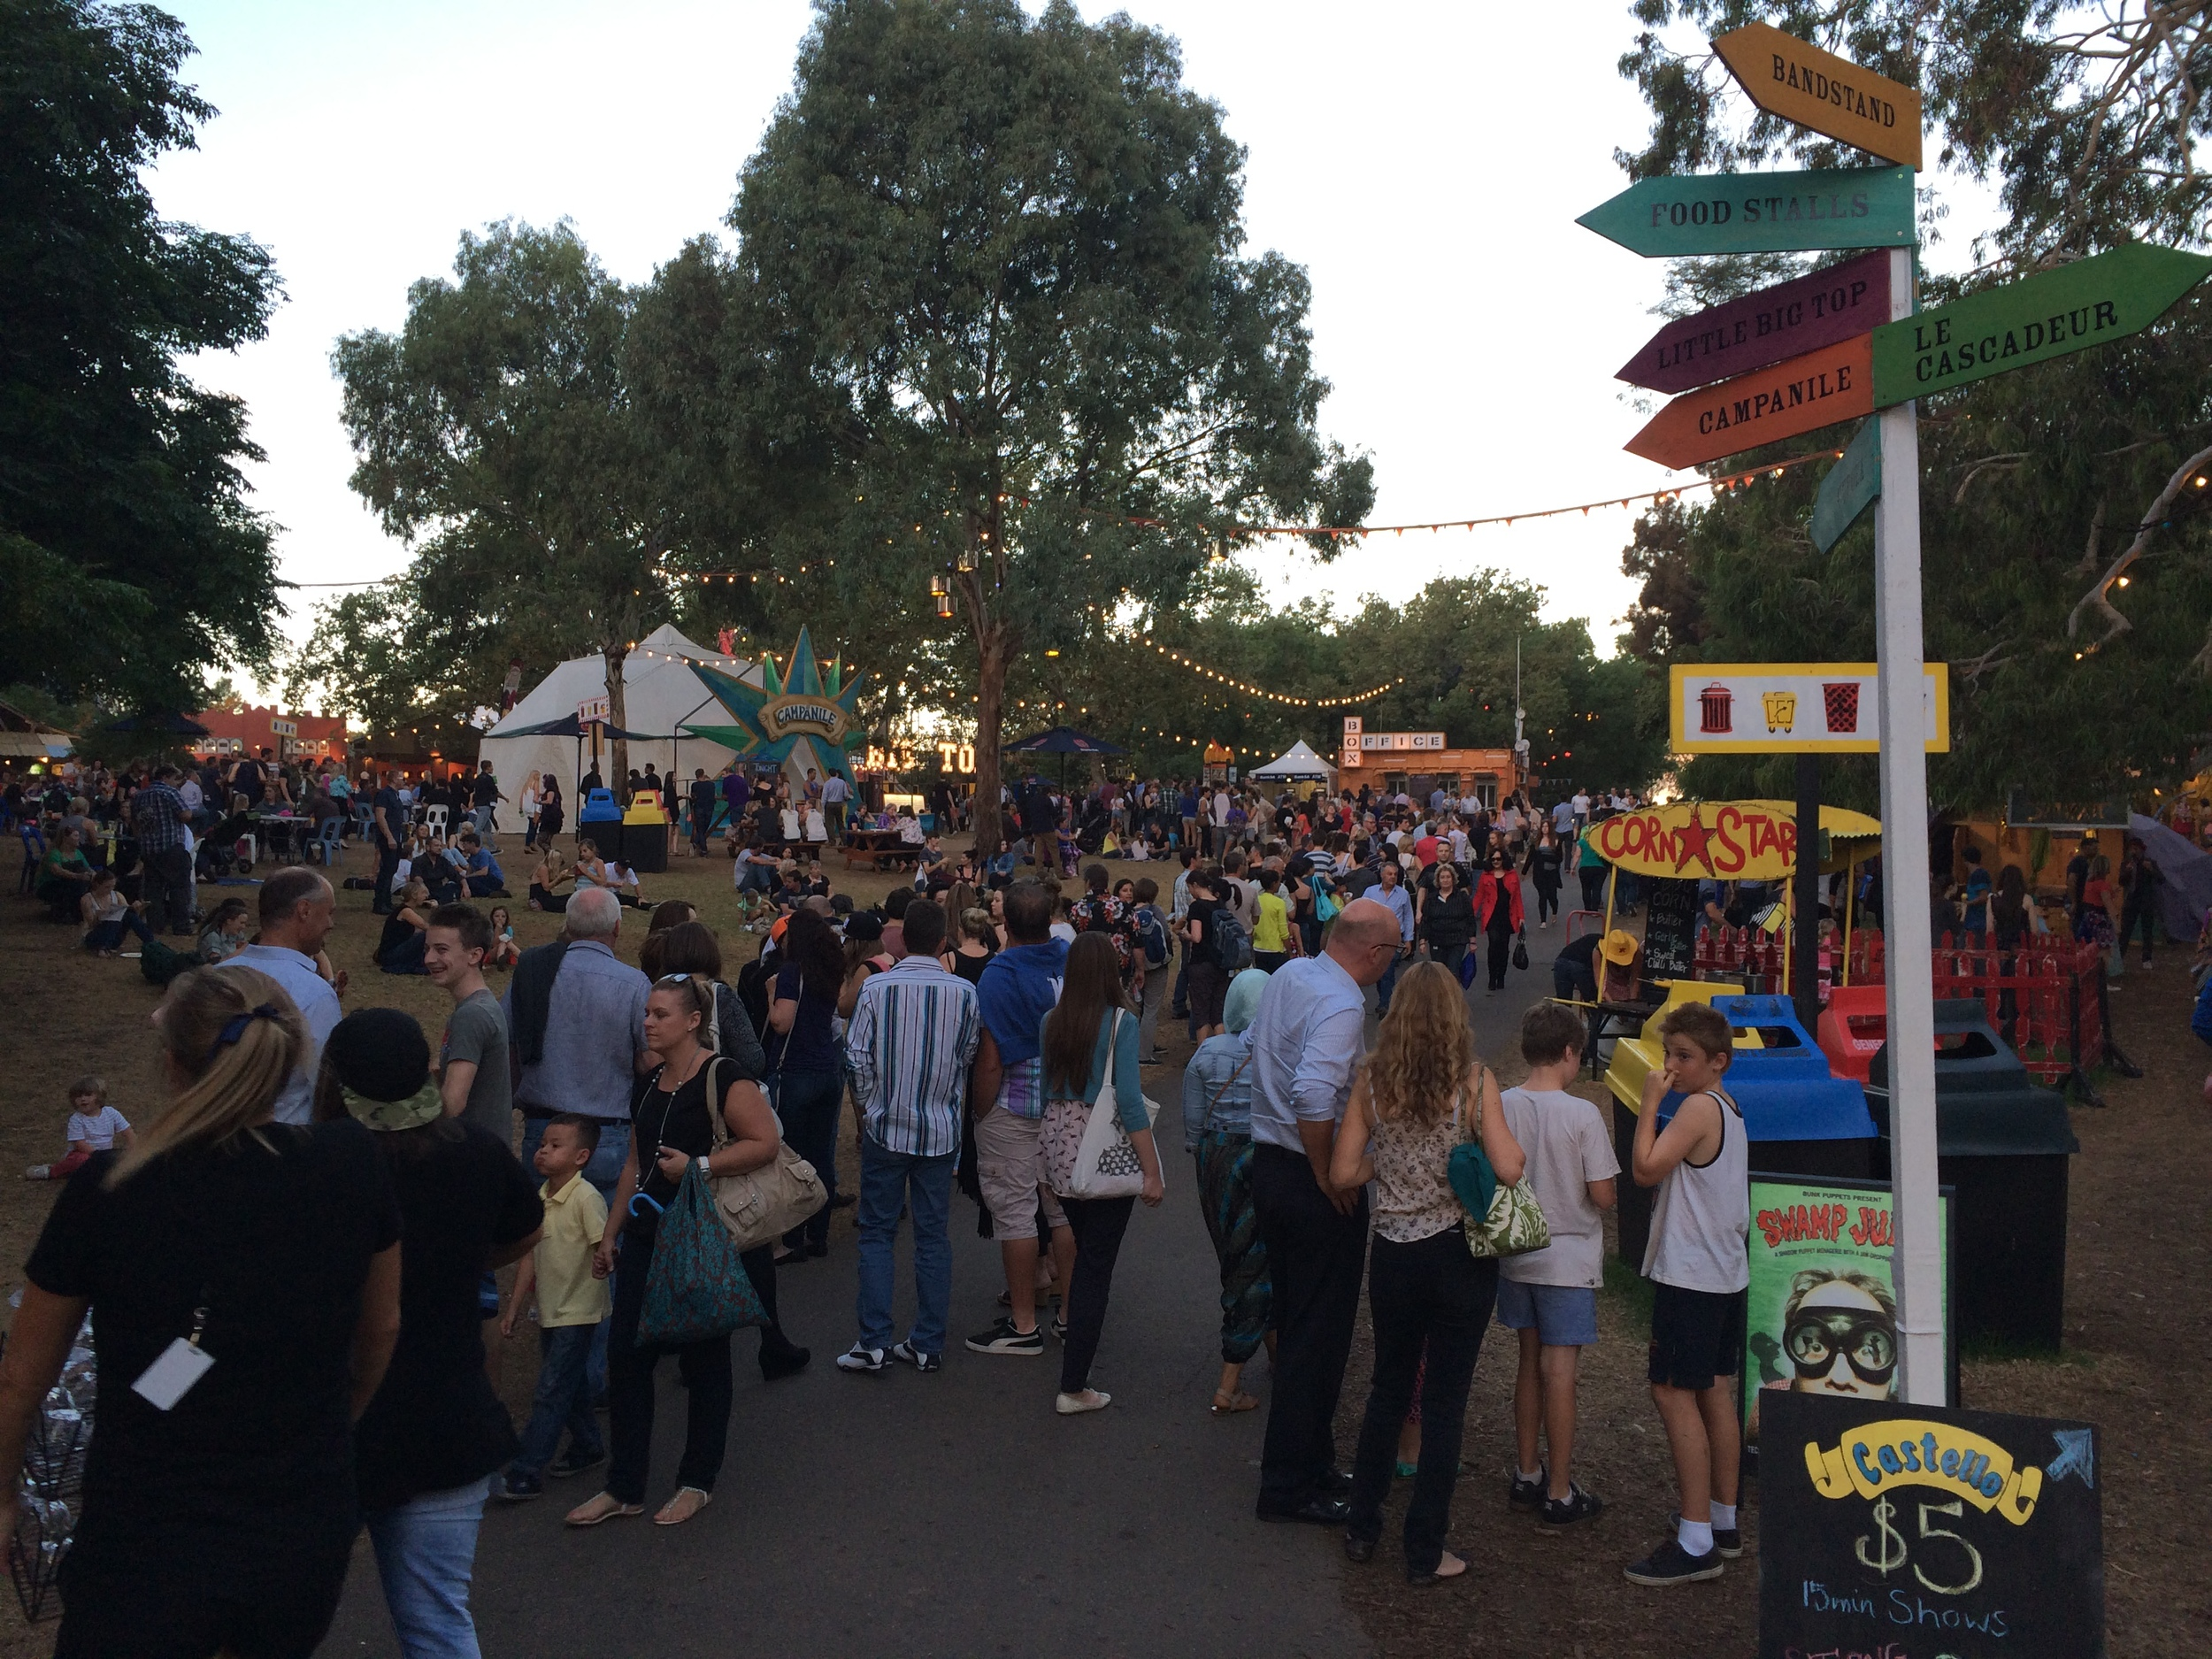 It was a packed Friday night down at the Garden of Unearthly Delights.